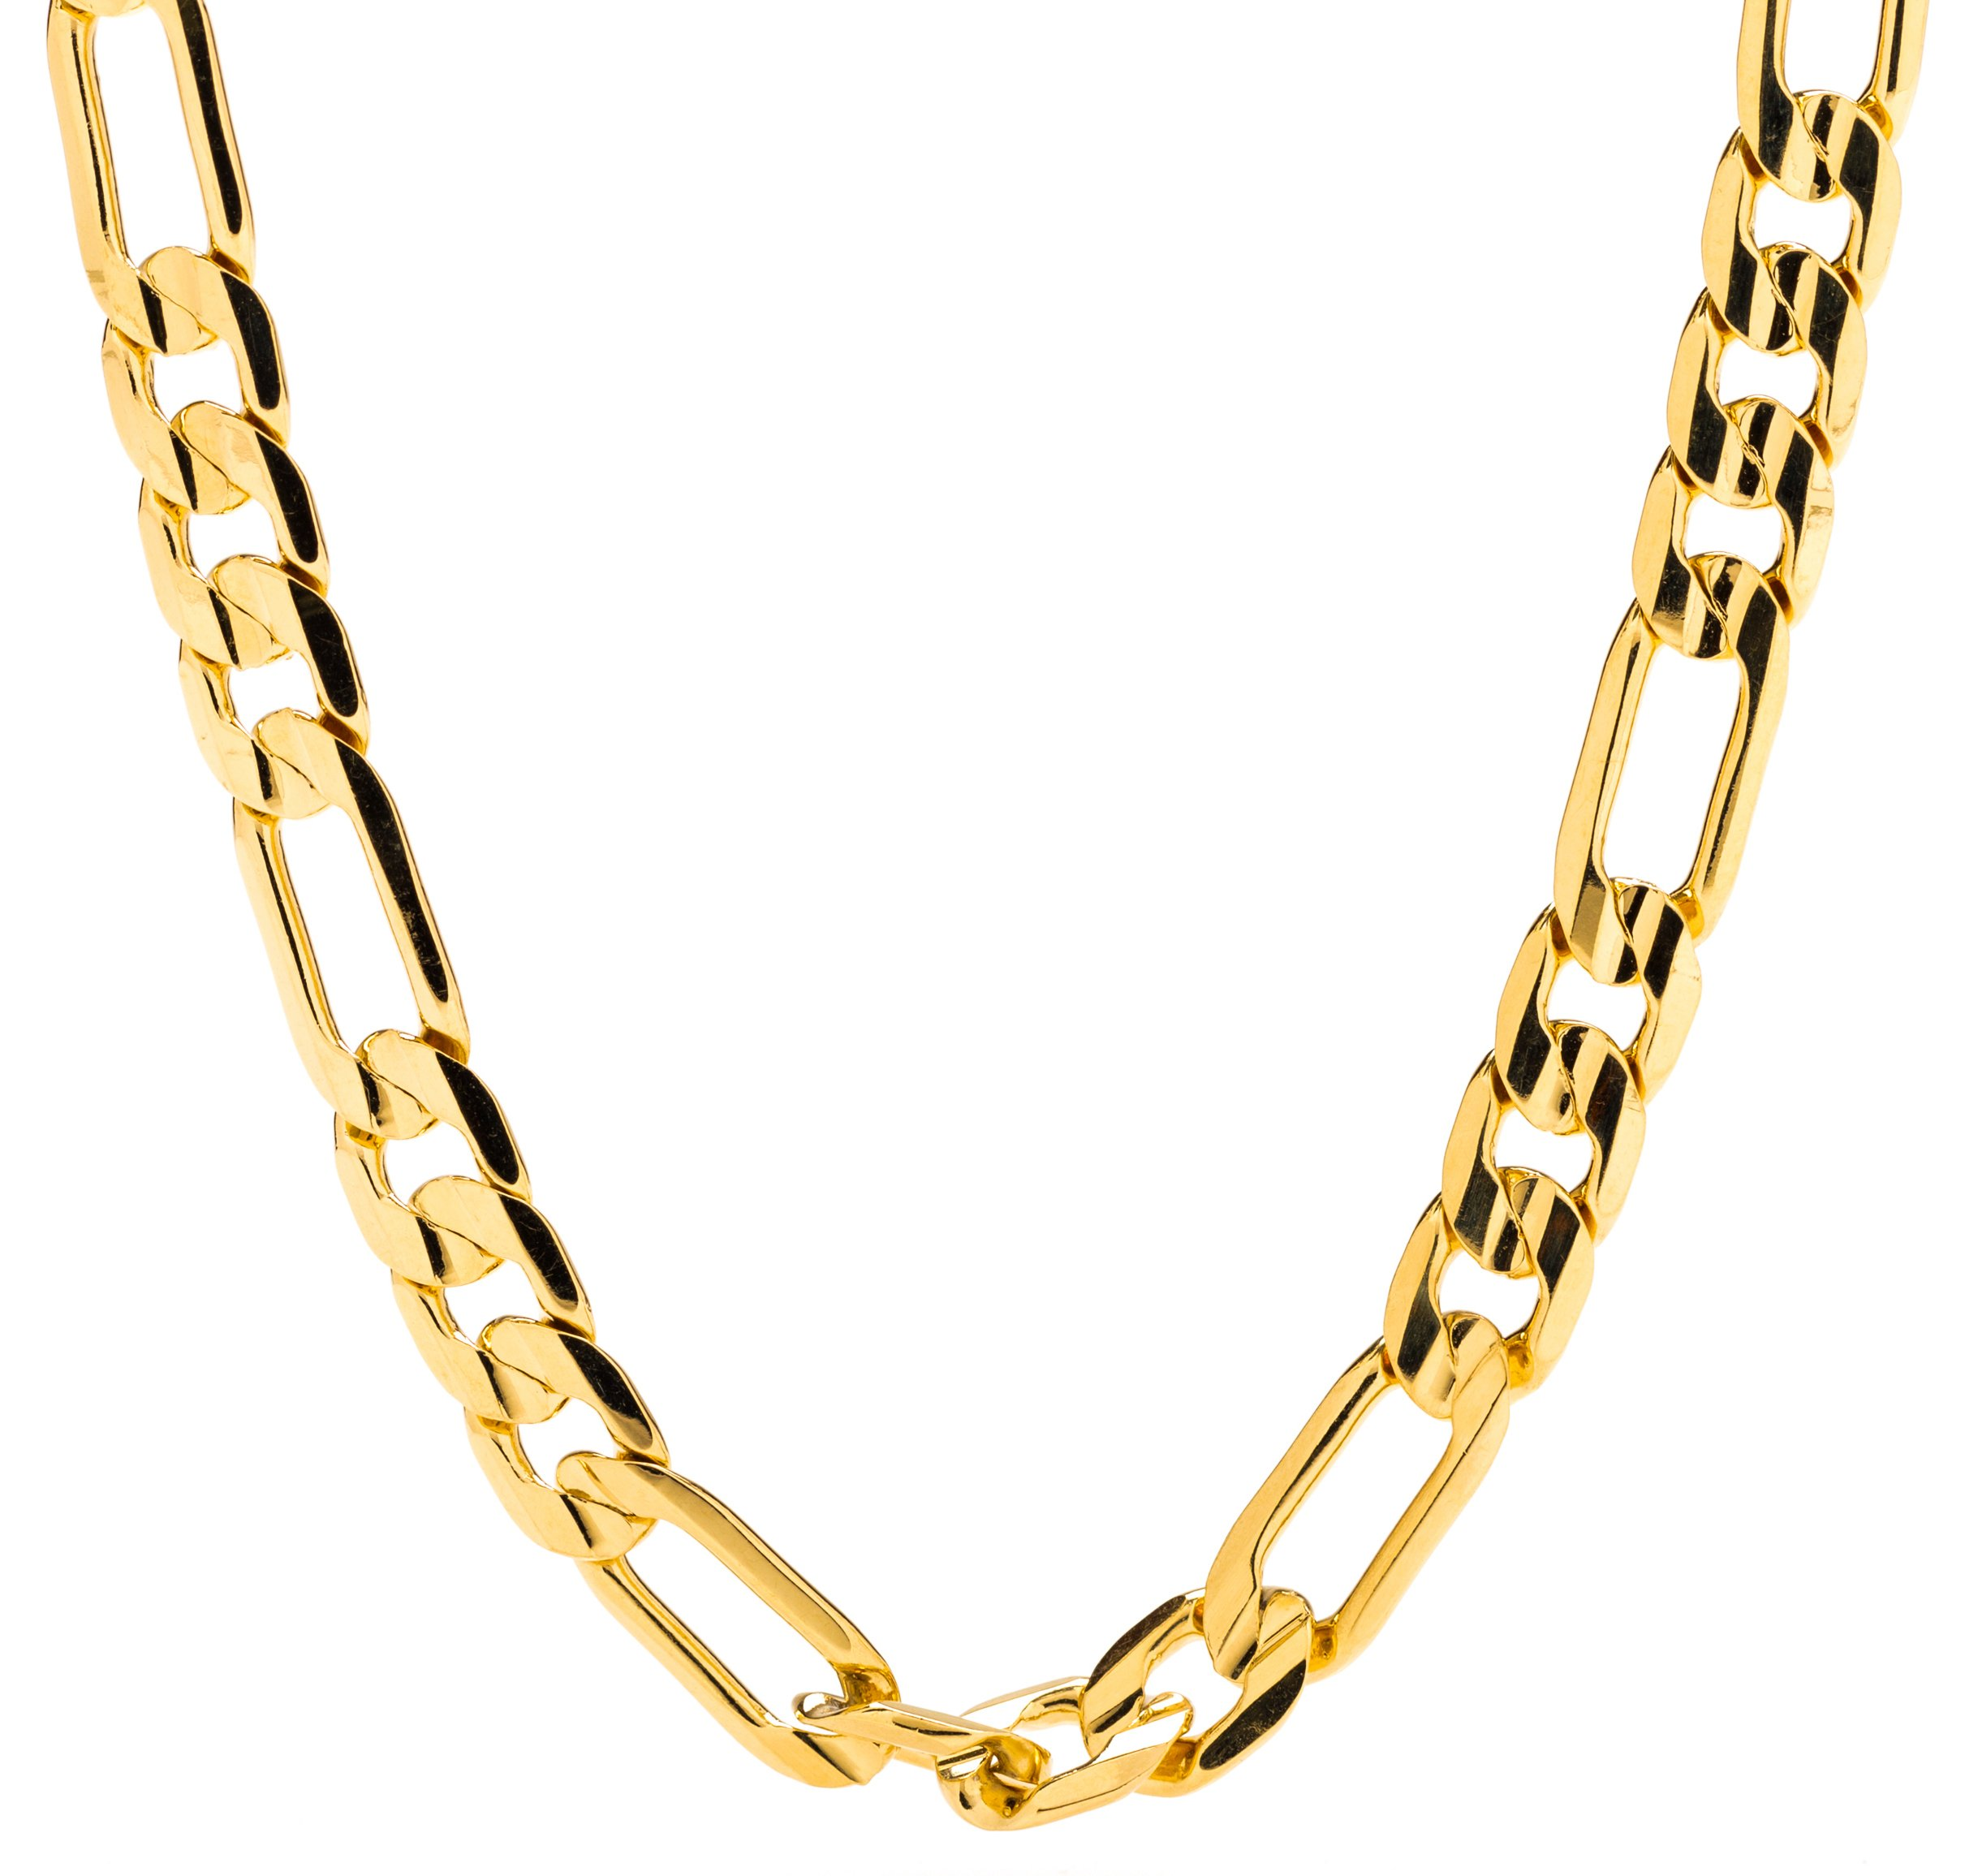 Gold Figaro Chain 7MM Fashion Jewelry Necklaces, 24K Overlay, Resists Tarnishing, GUARANTEED FOR LIFE, 24 Inches